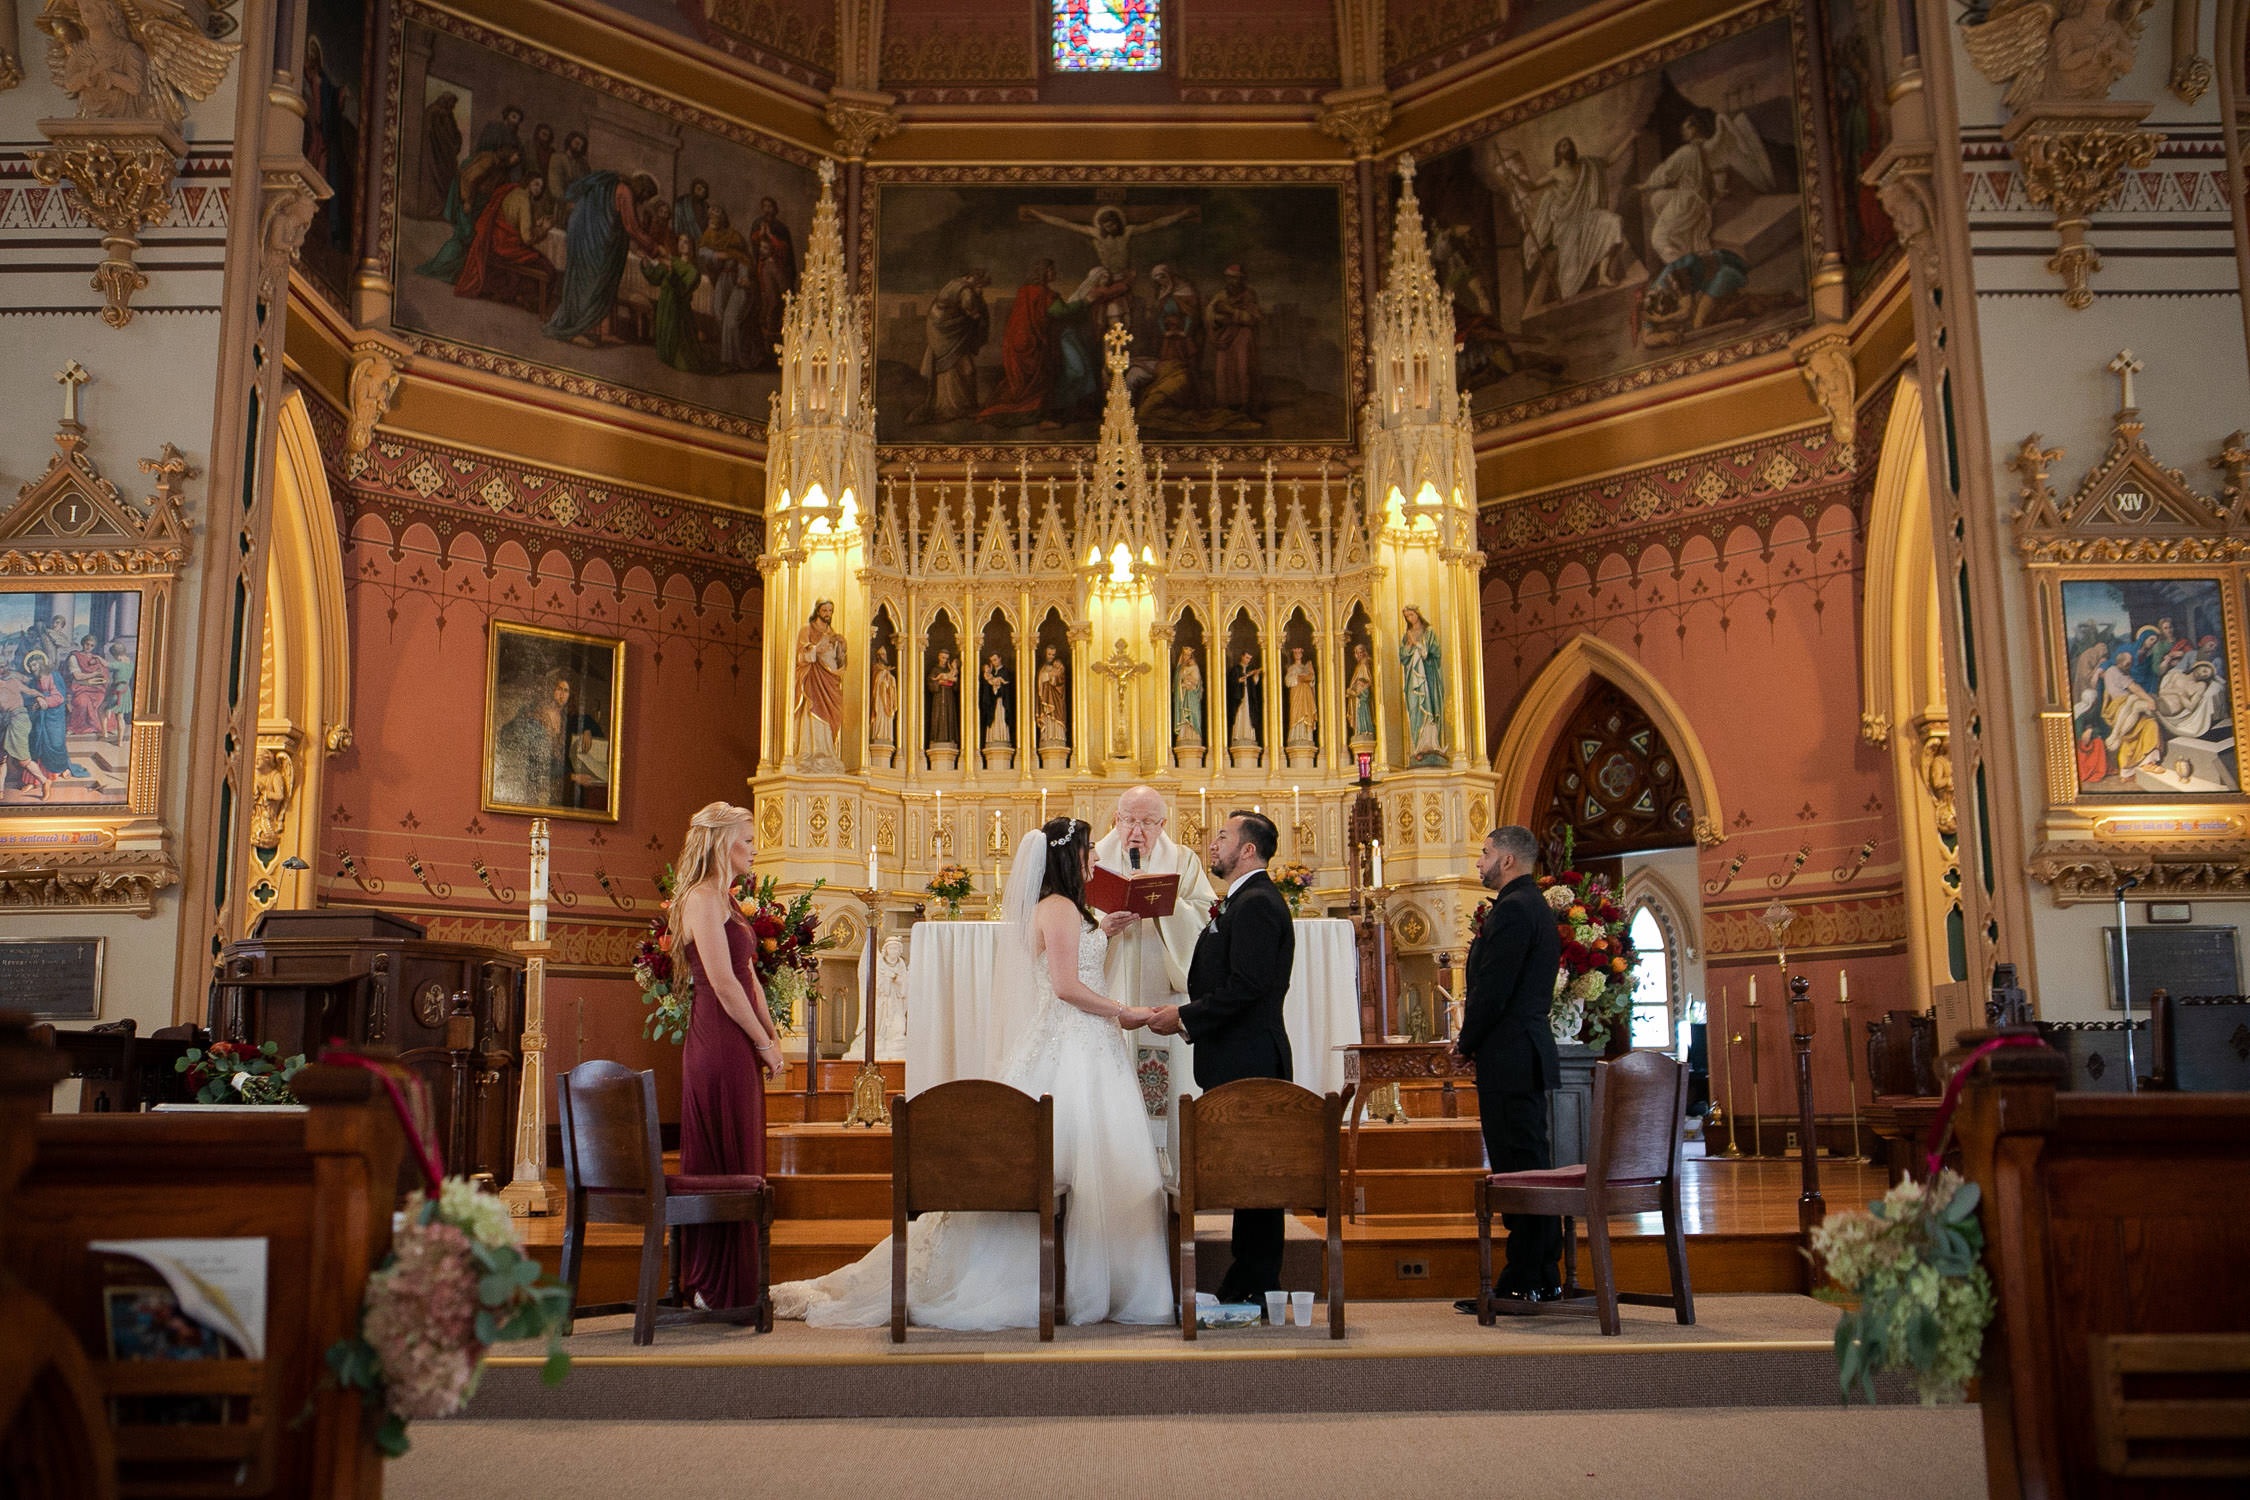 St John's Church Clinton MA, vows during a wedding, gorgeous altar